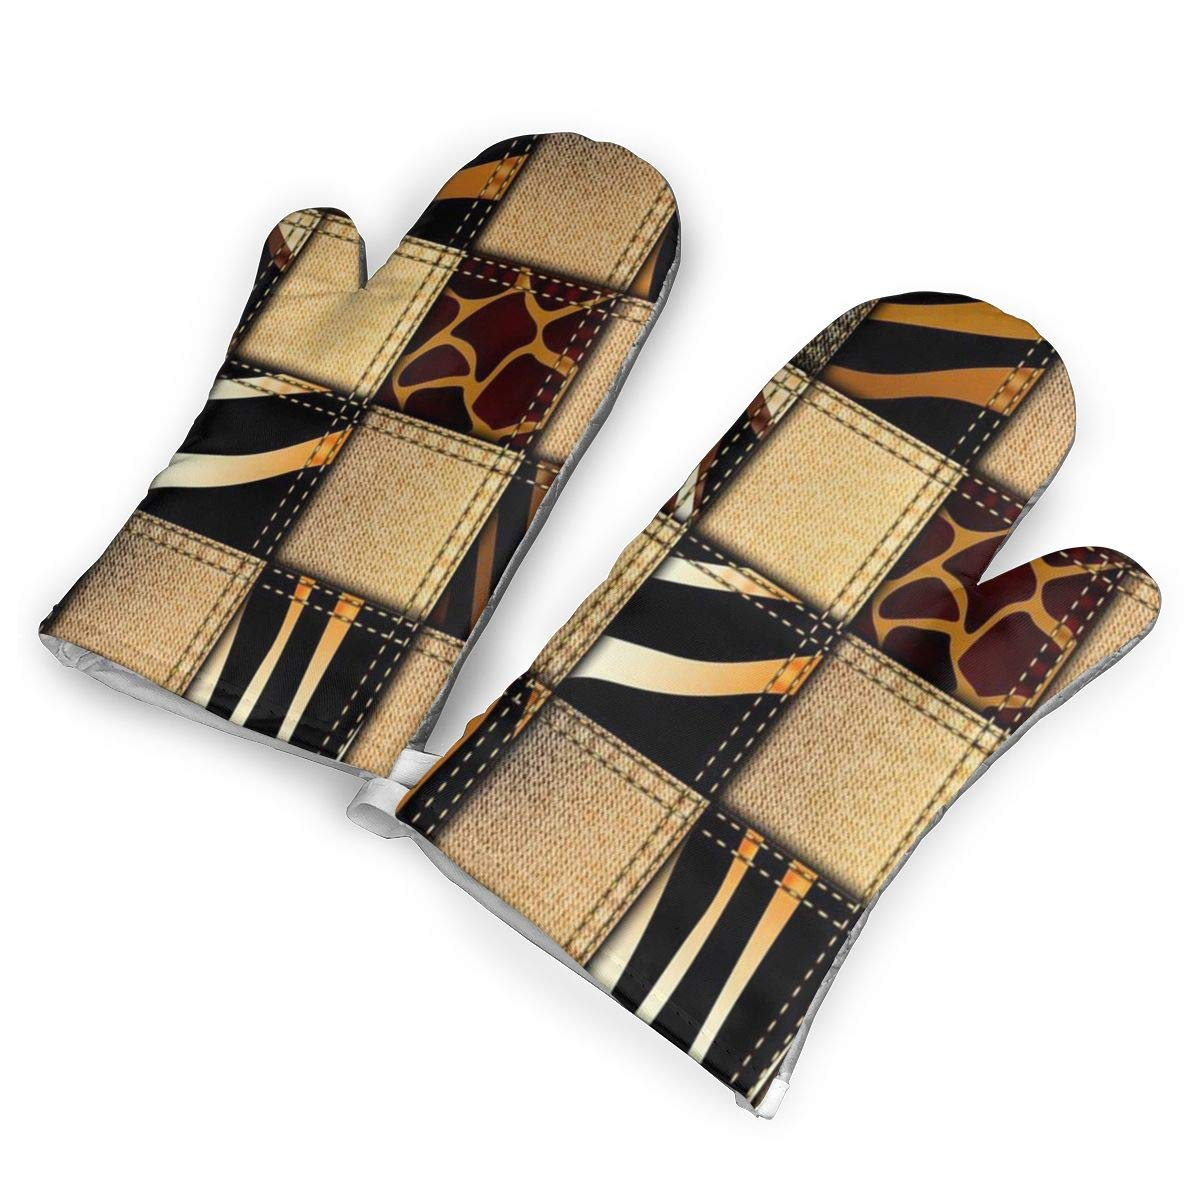 Feederm Jeans Denim Patchwork in Safari Style Oven Mitts,Professional Heat Resistant Microwave Oven Insulation Thickening Gloves Baking Pot Mittens Soft Inner Lining Kitchen Cooking